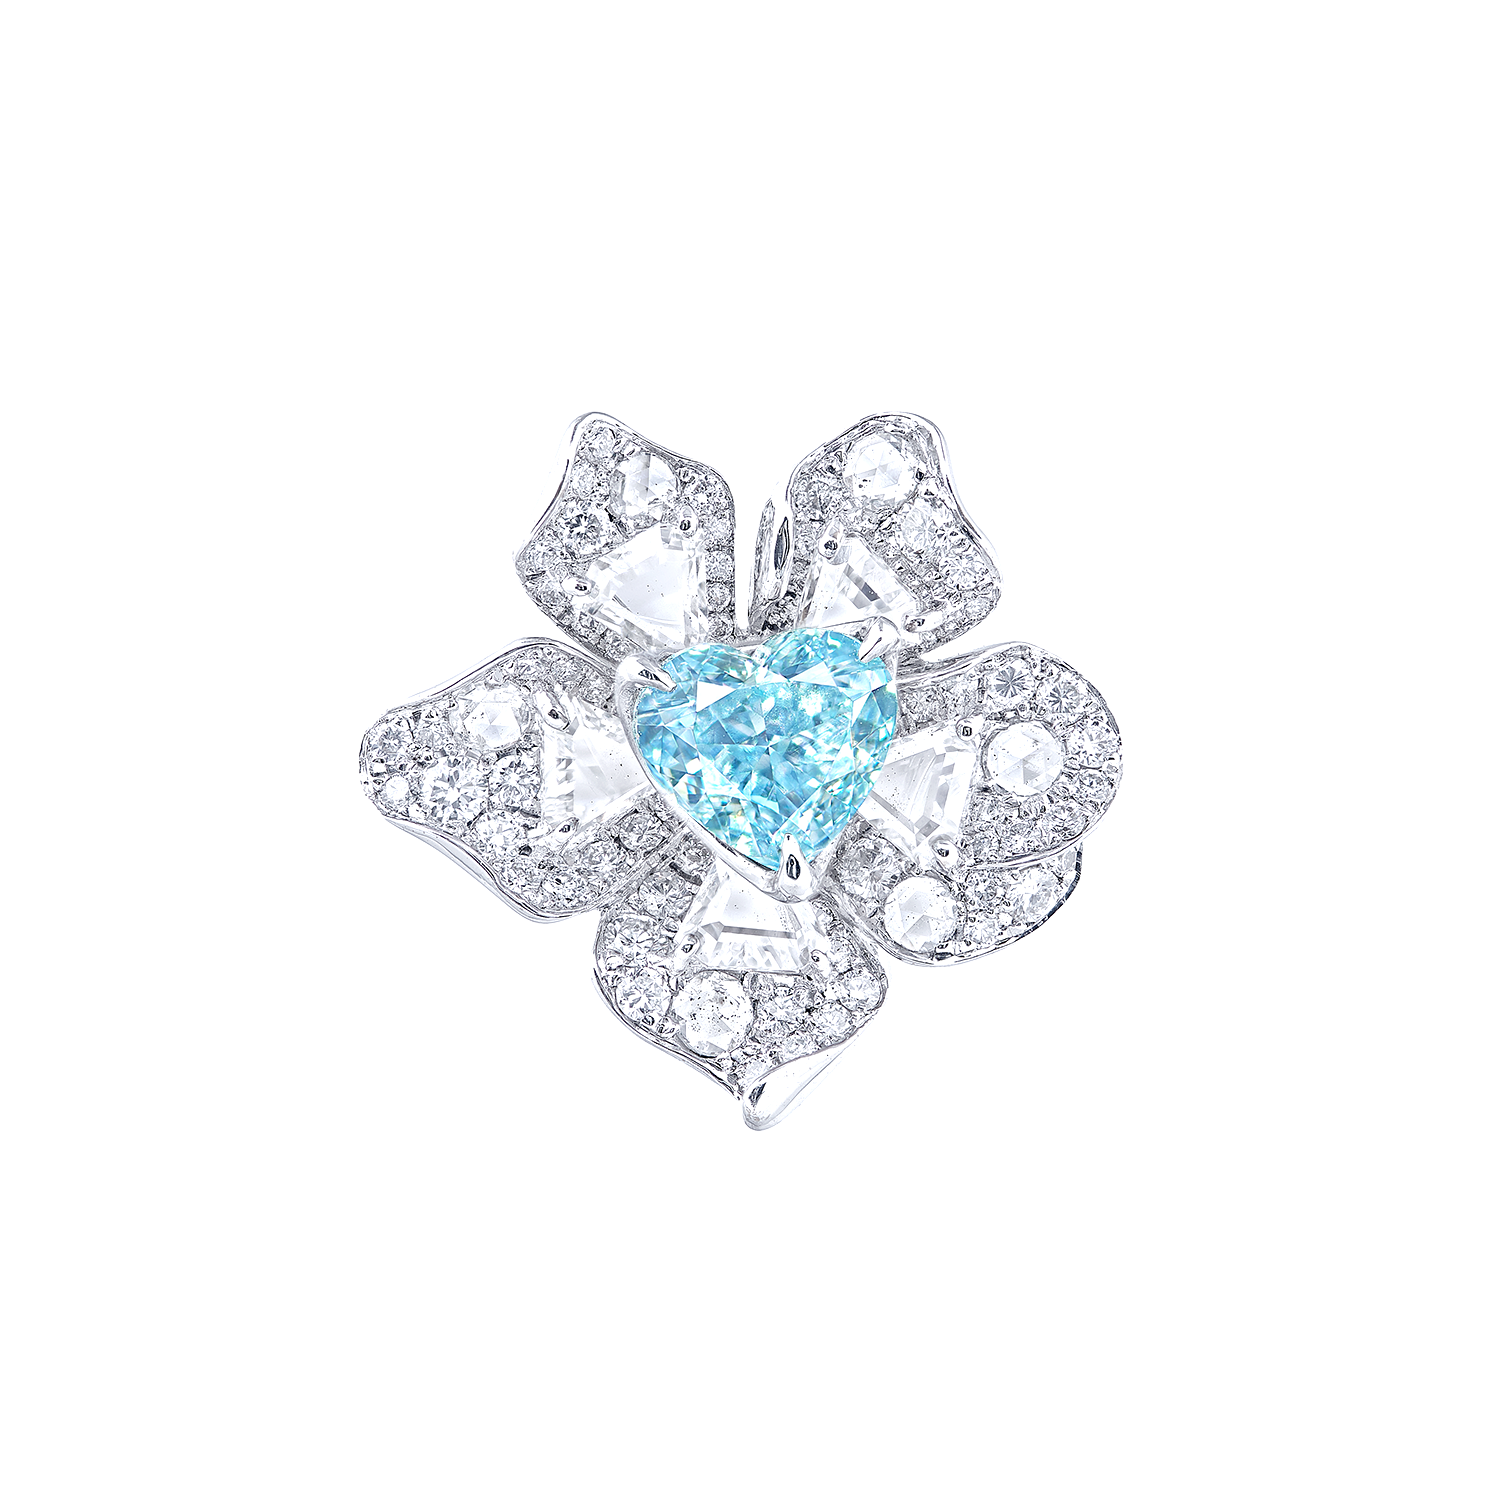 GIA 2.01克拉 淡彩綠藍彩鑽鑽石戒